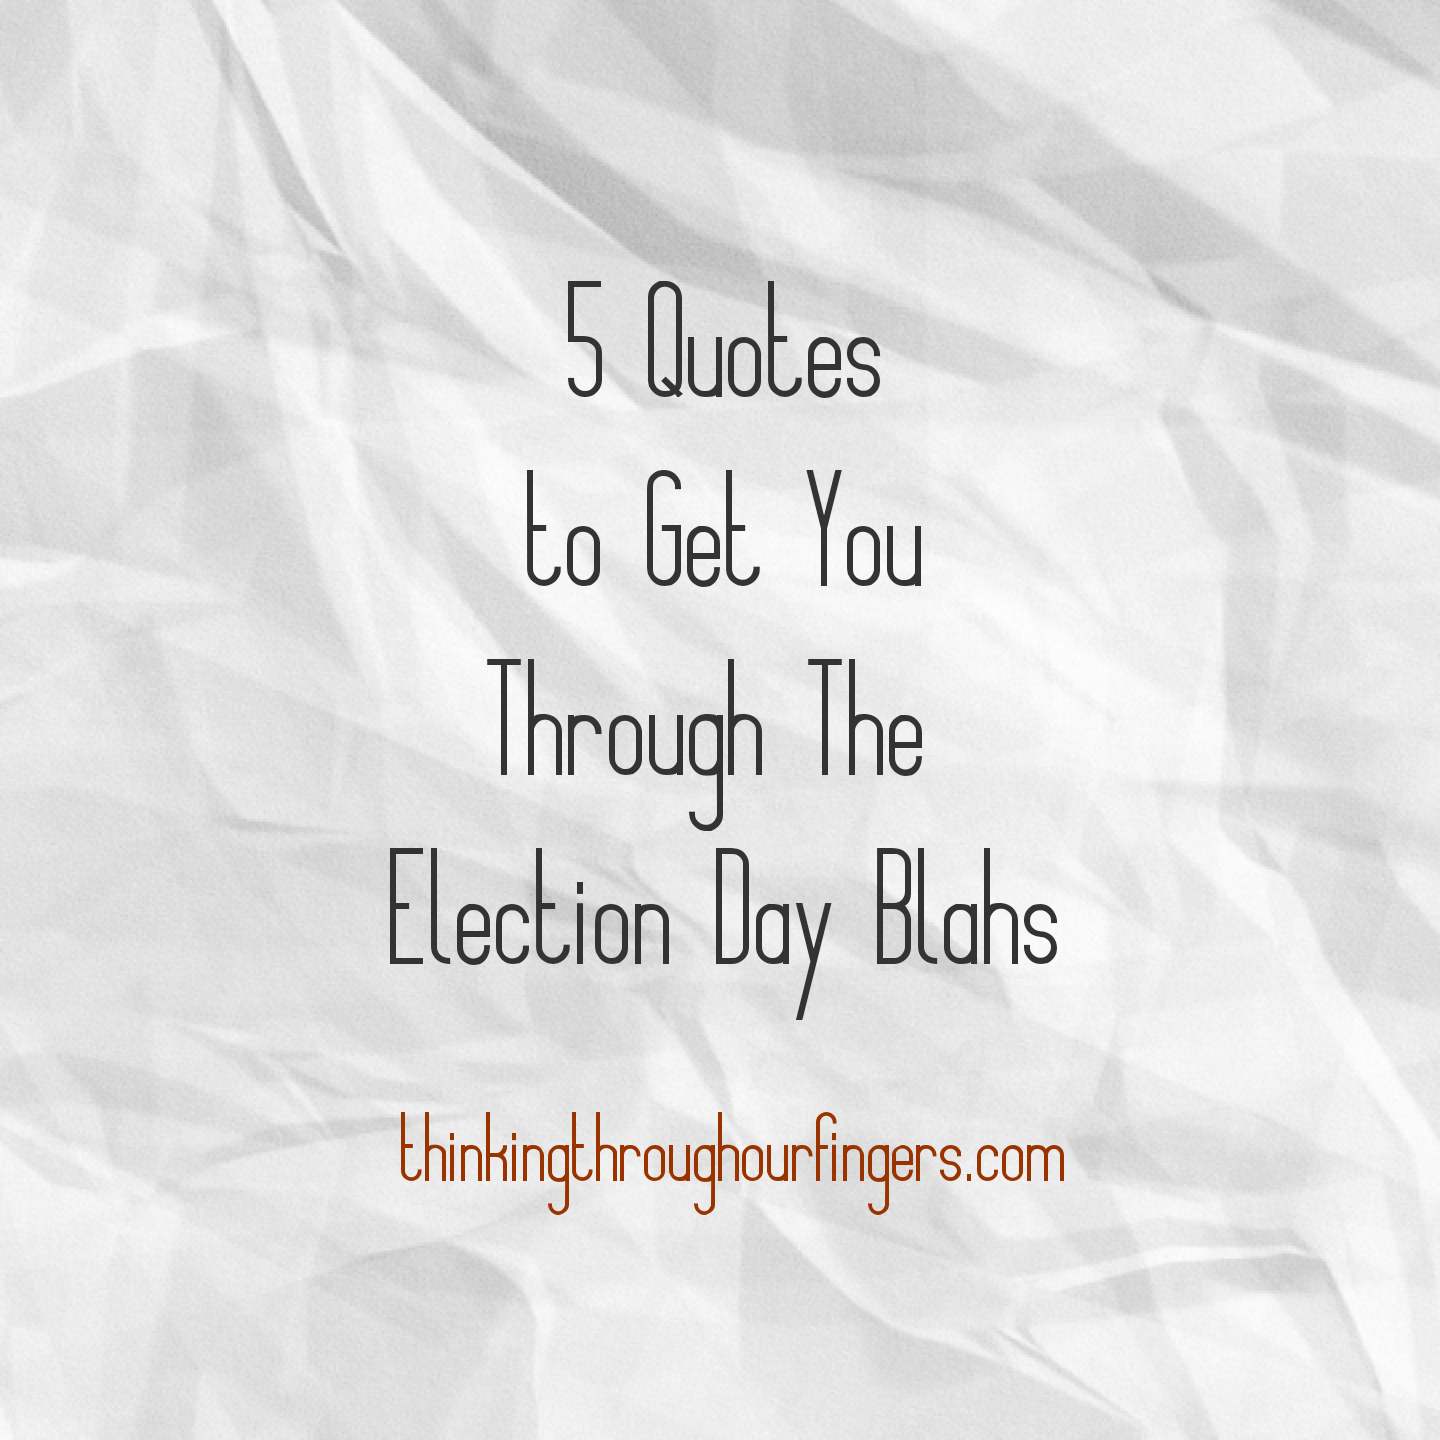 Quotes To Get You Through The Day 5 Quotes To Get Through The Election Day Blahs  Thinking Through